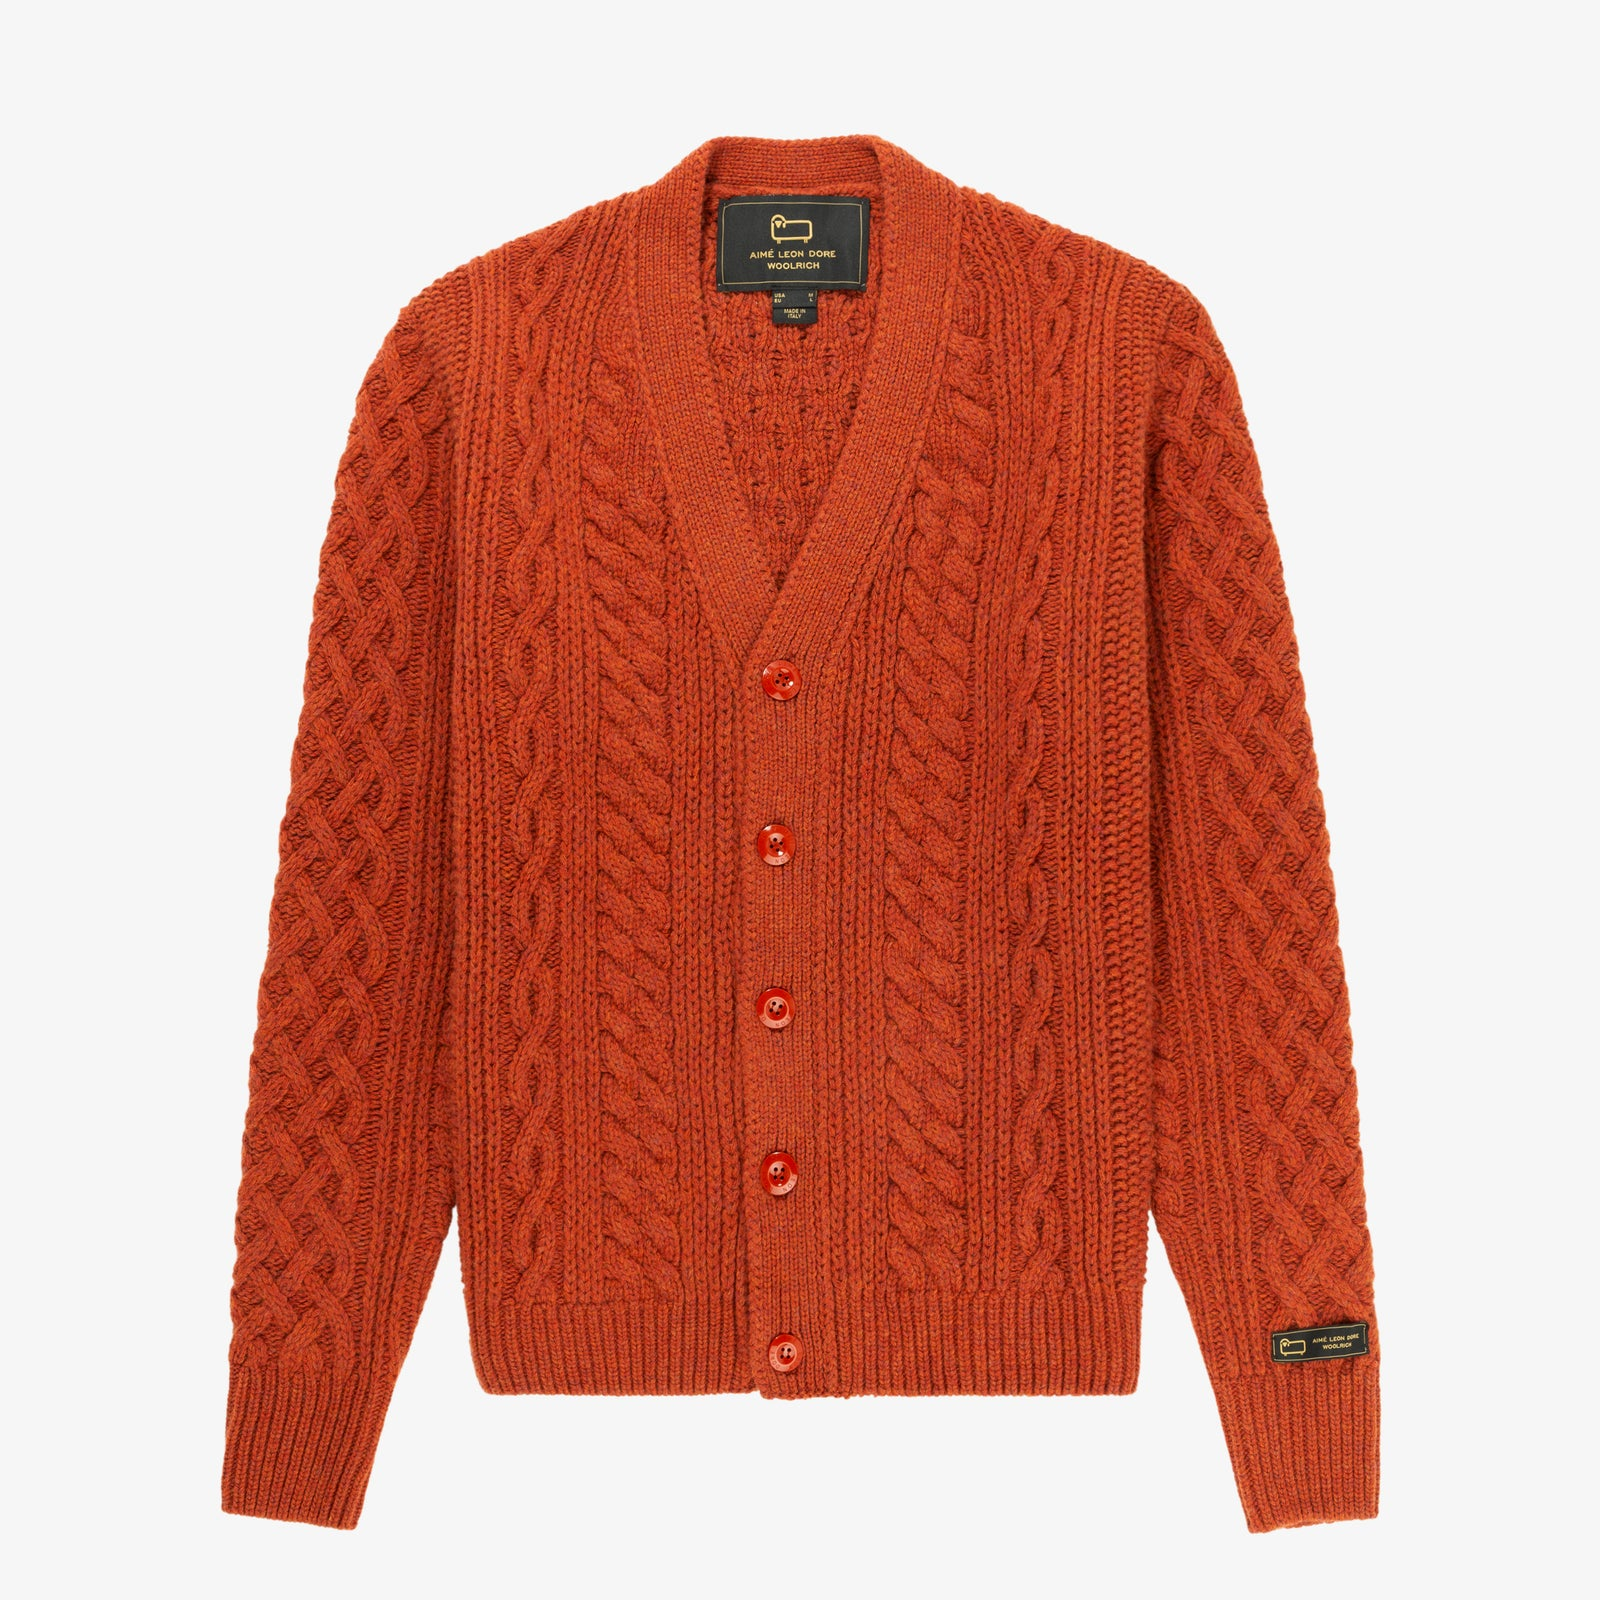 ALD / Woolrich Cable Cardigan